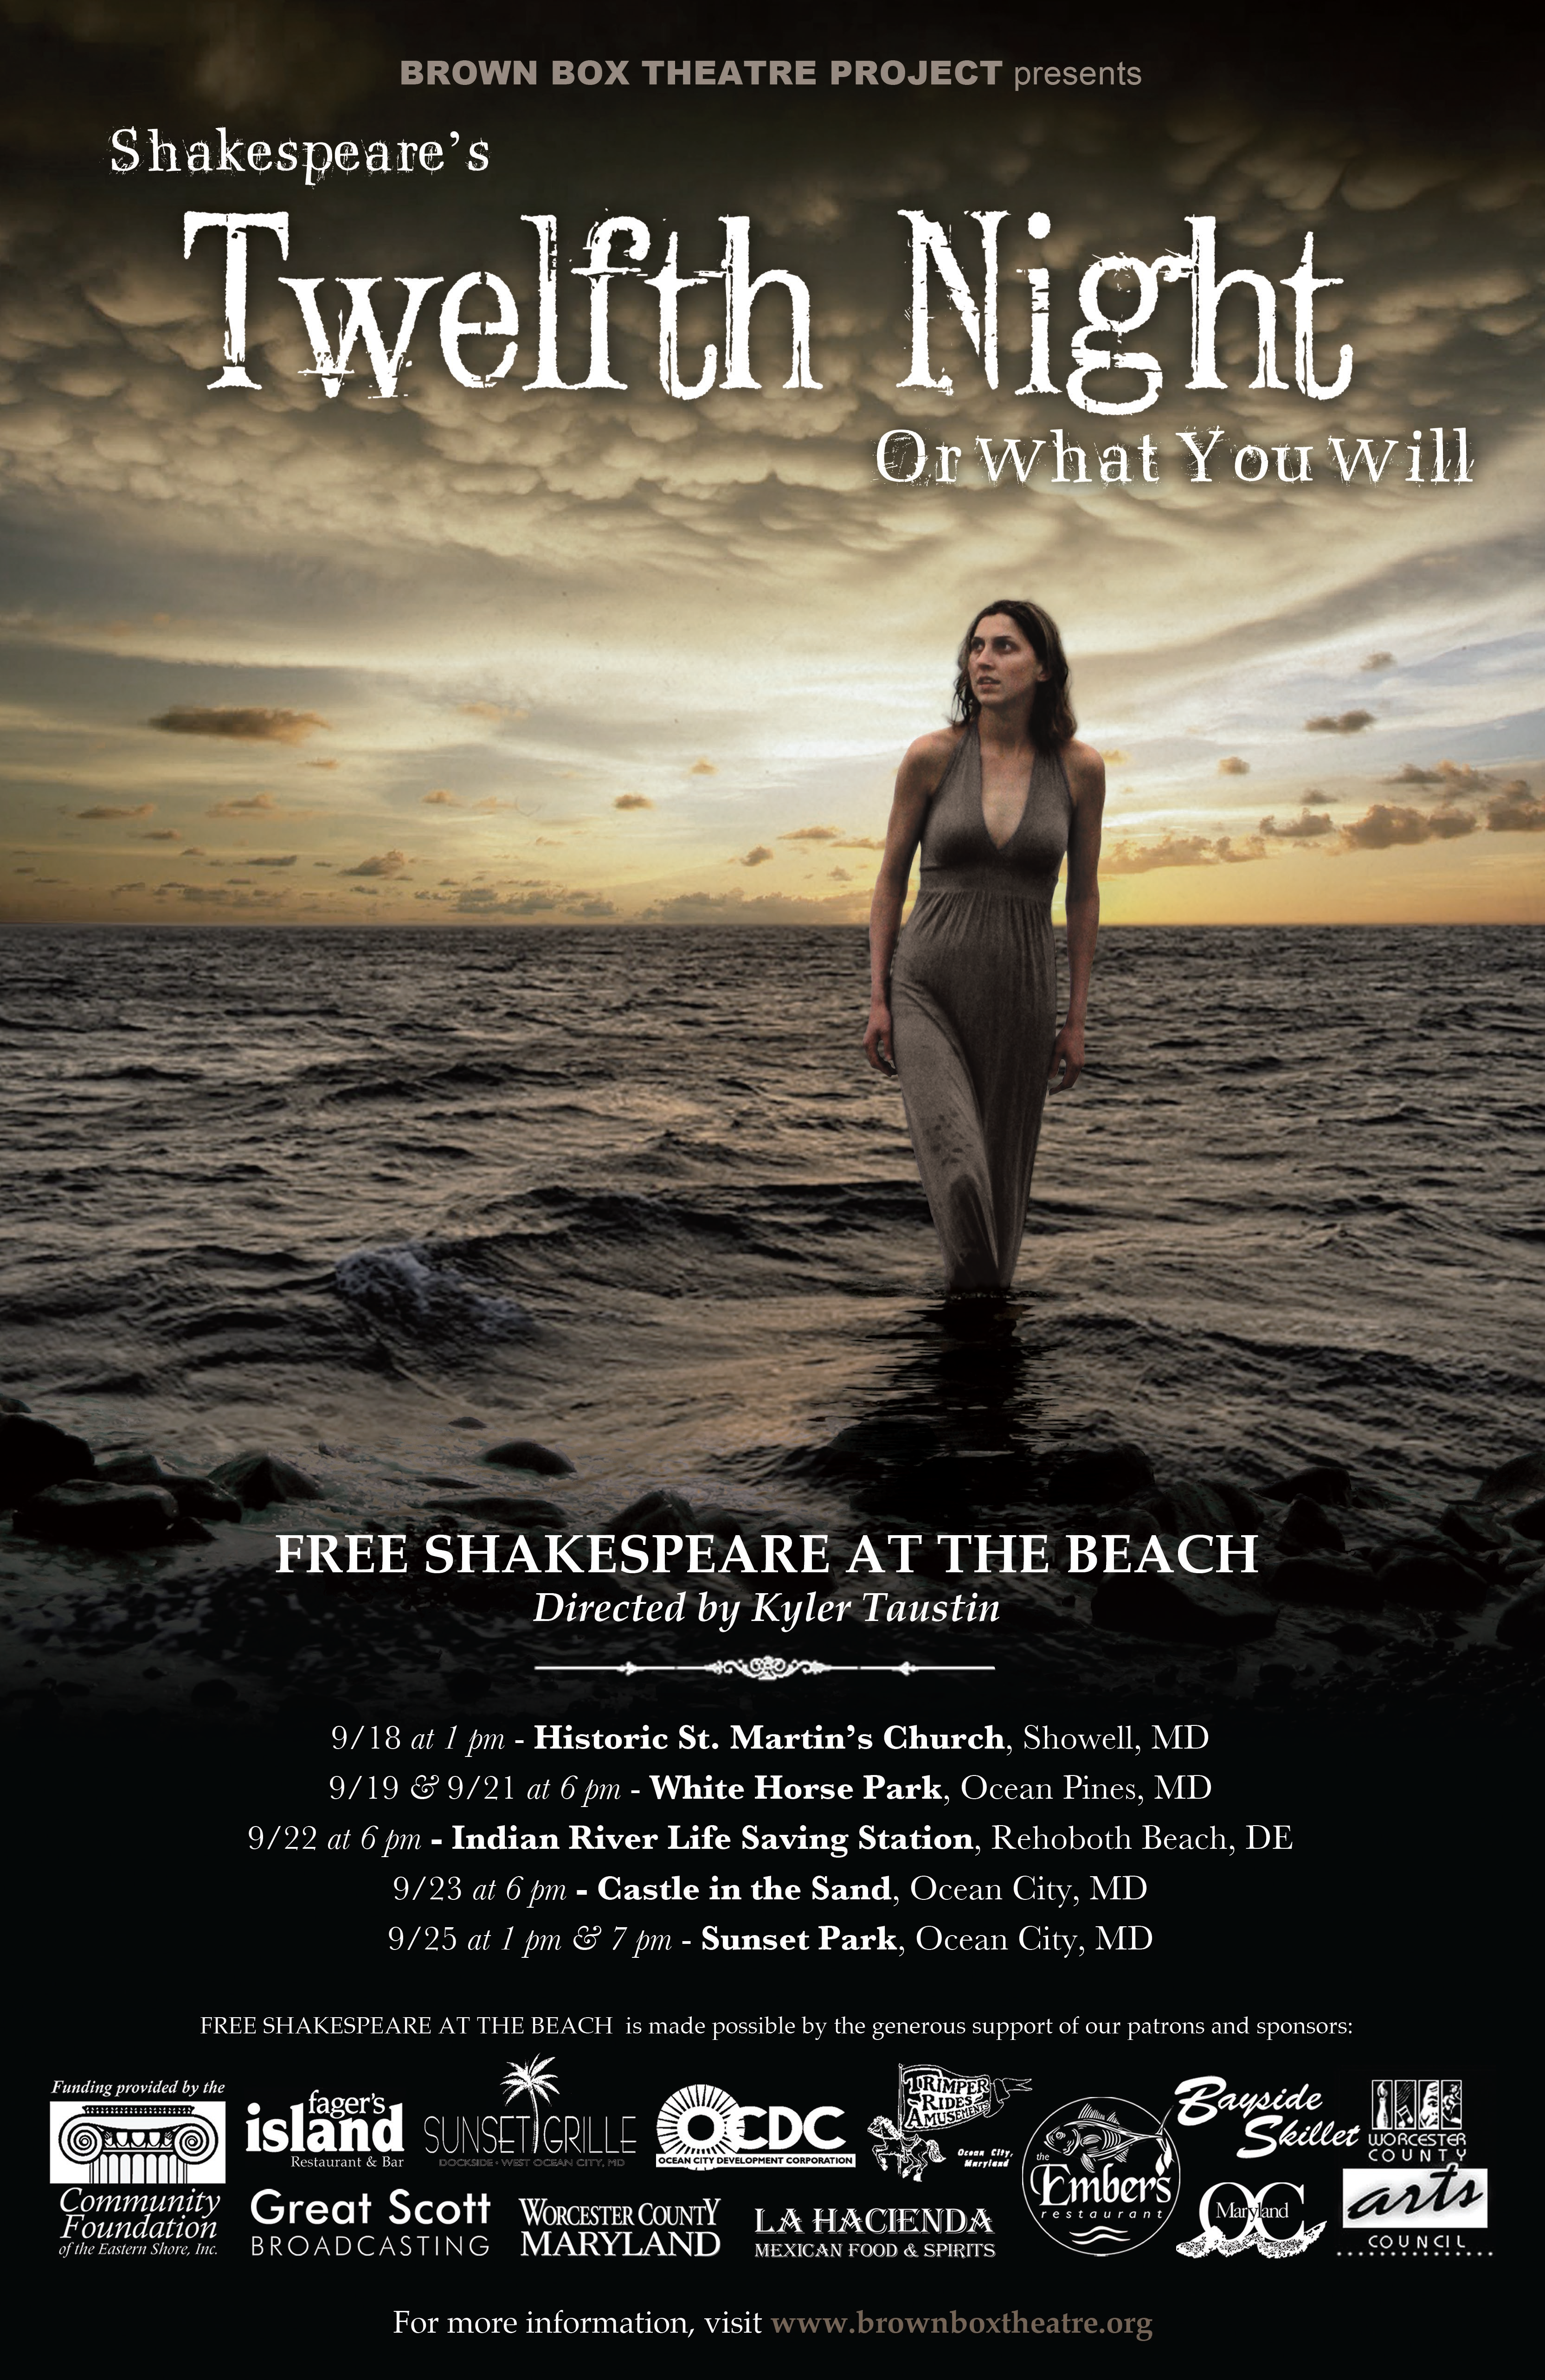 poster for a twelfth night play